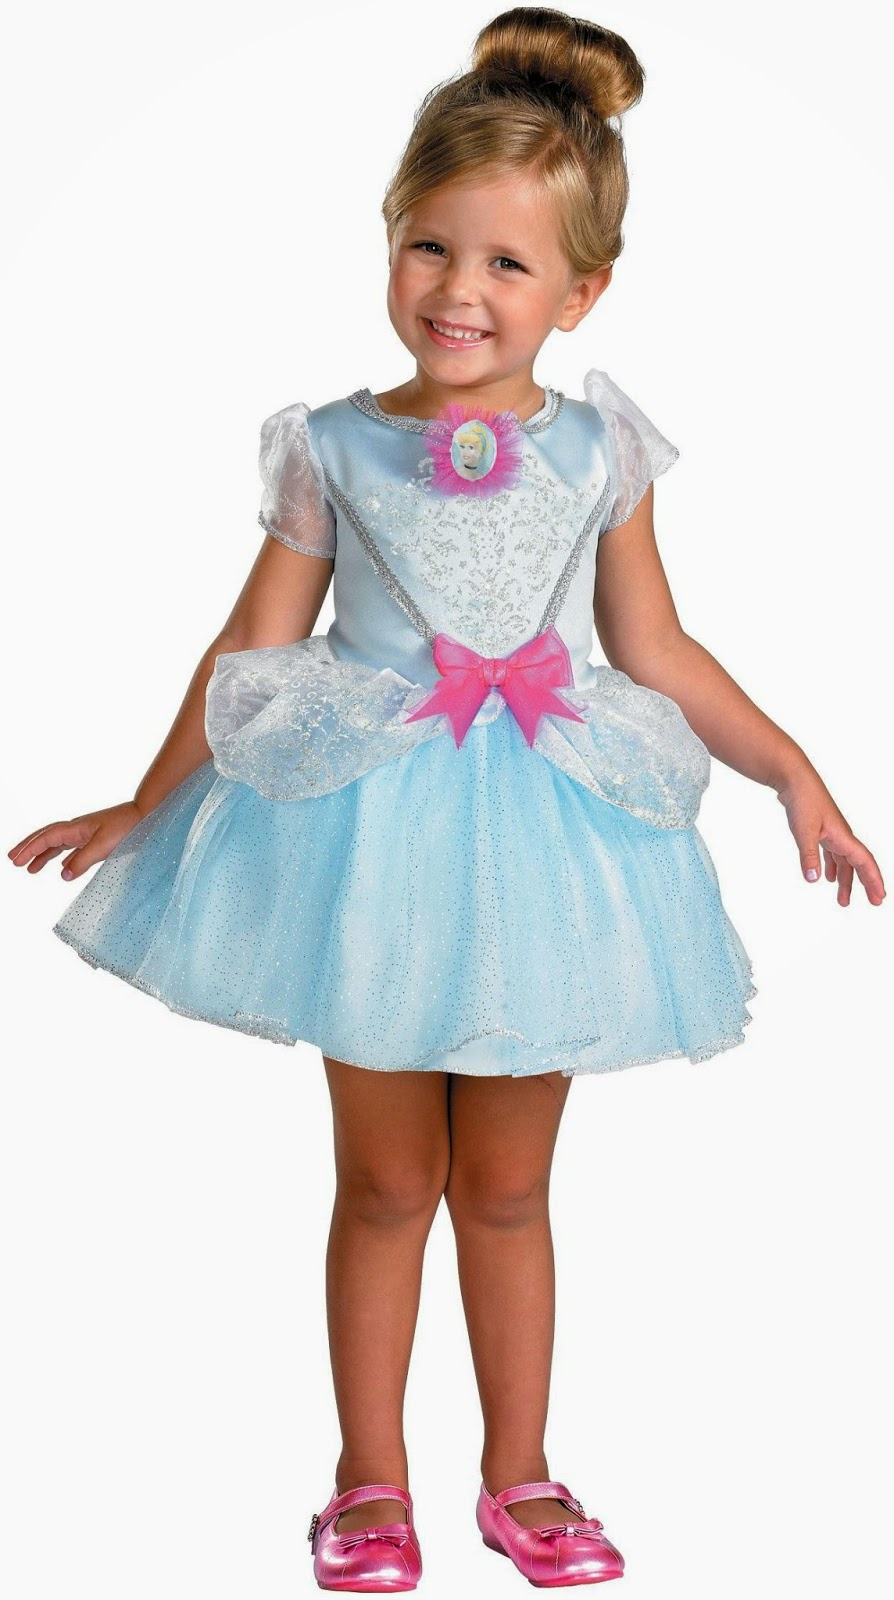 Fantastic Fancy Dress Party Ideas For Kids Crest - All Wedding ...